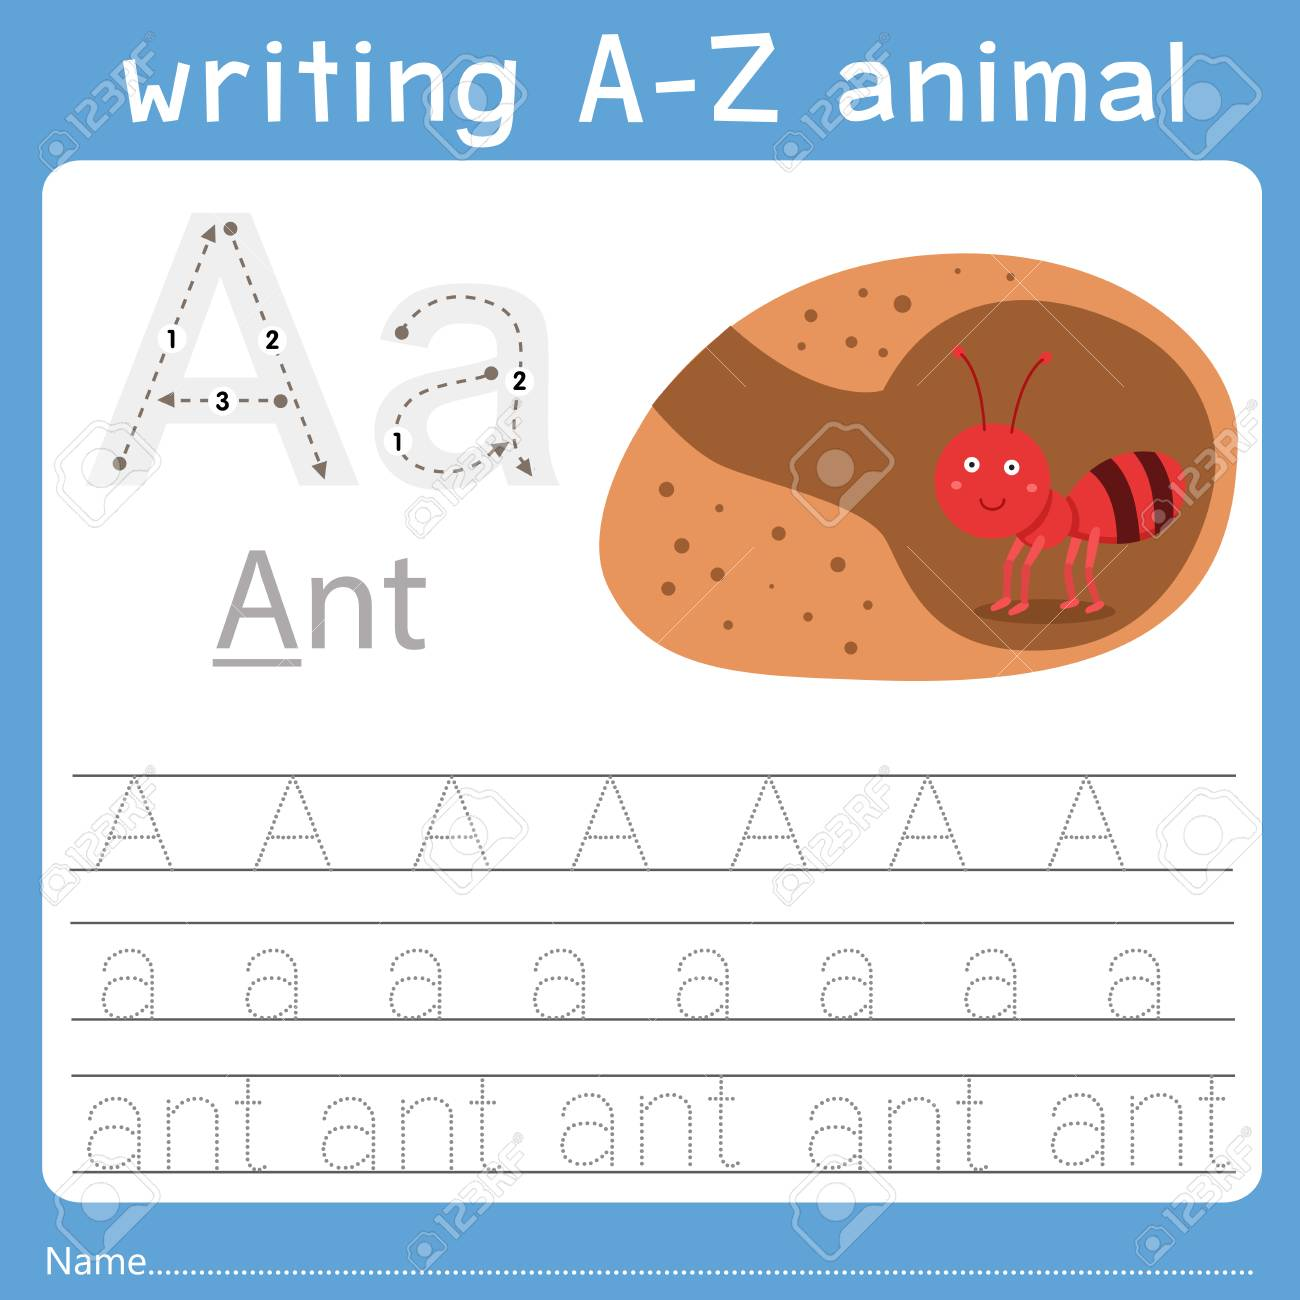 Illustrator of writing a-z animal a - 126050589